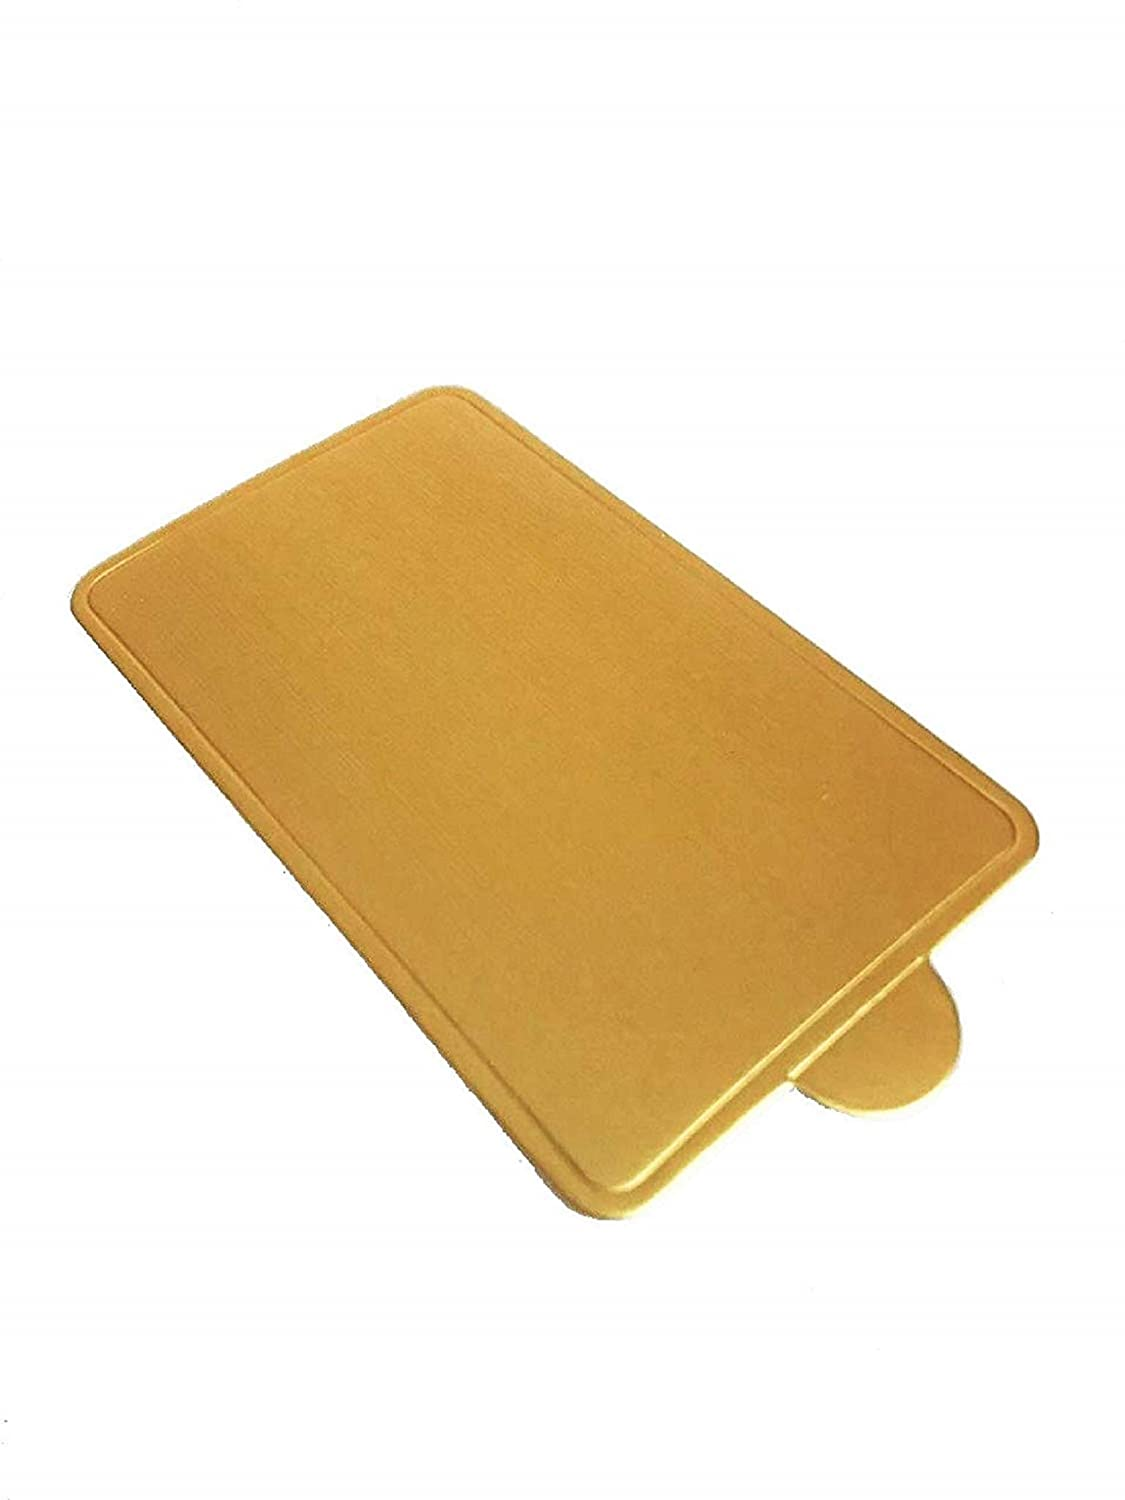 Single Serve Cardboard Dessert Board Cake Base with Tab; Perfect for personal sized desserts Pack of 100 Gold Square Mini Cake Board 4 x 2-1//4 inches